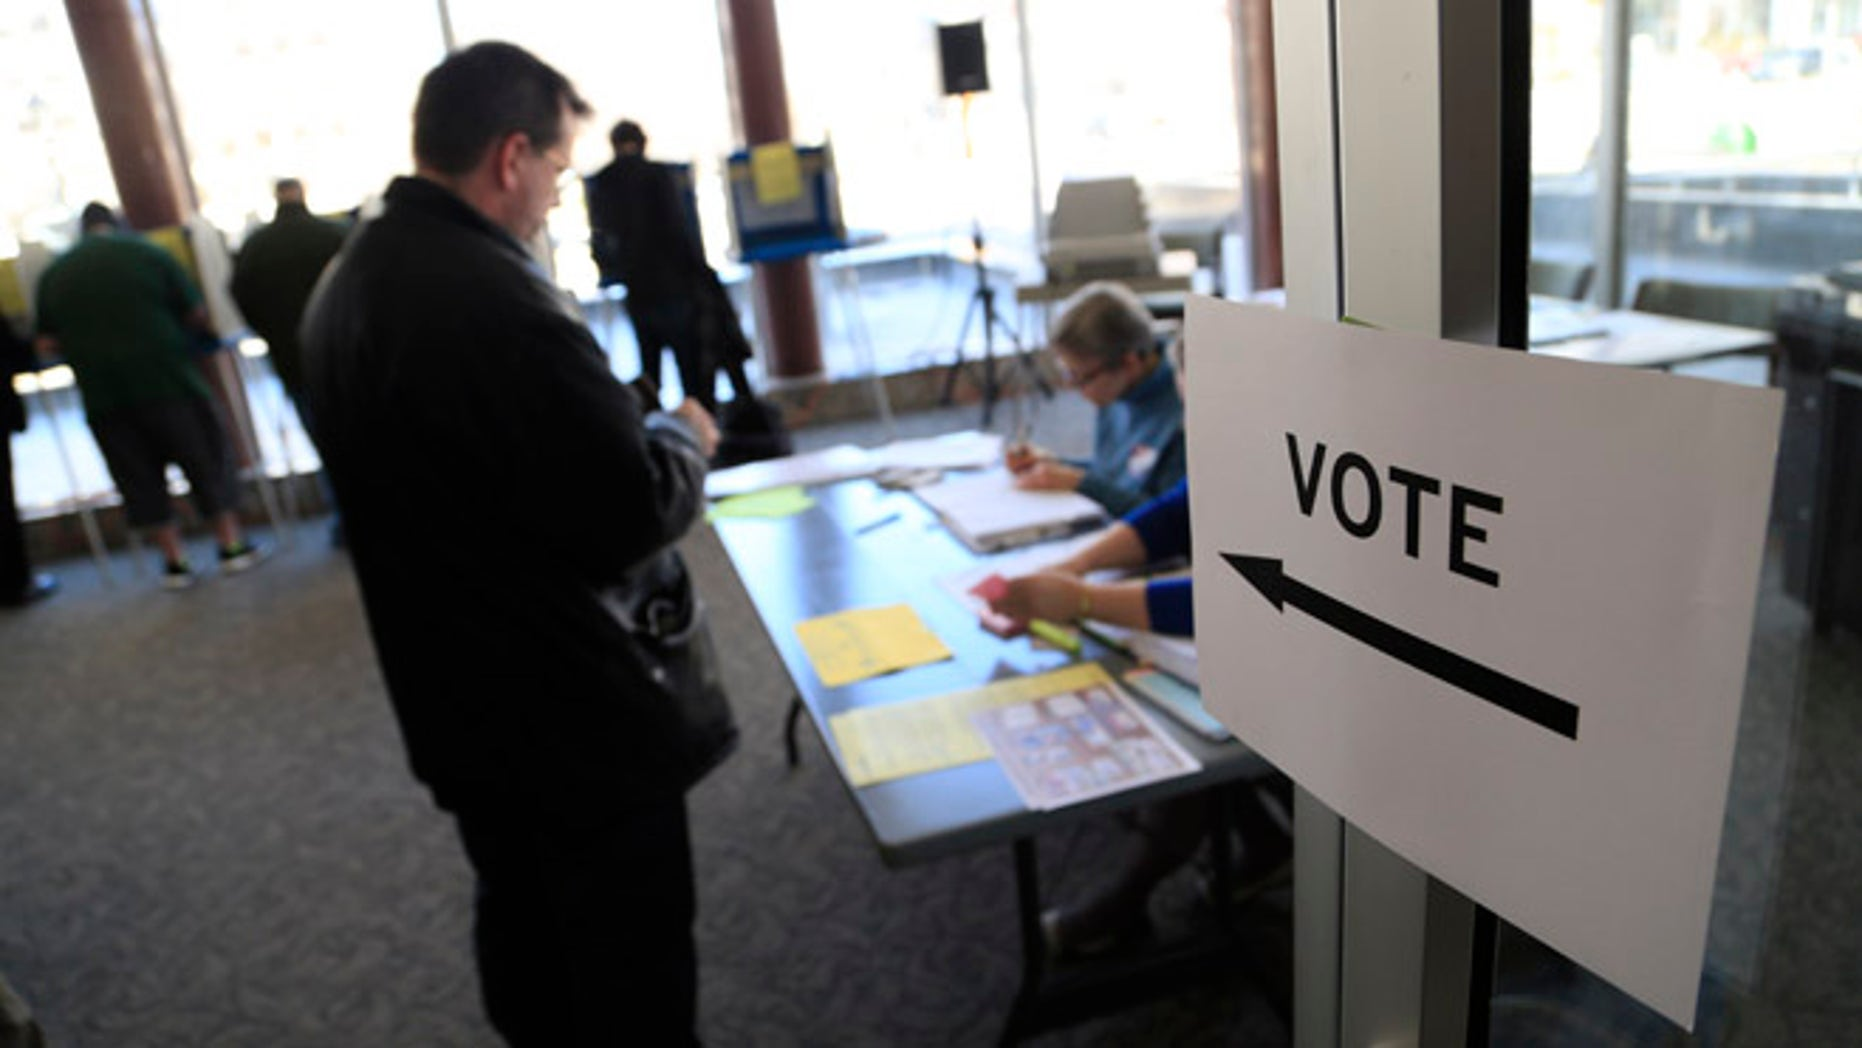 Voters take to the polls at Milwaukee City Hall April 5, 2016 in Milwaukee, Wisconsin.